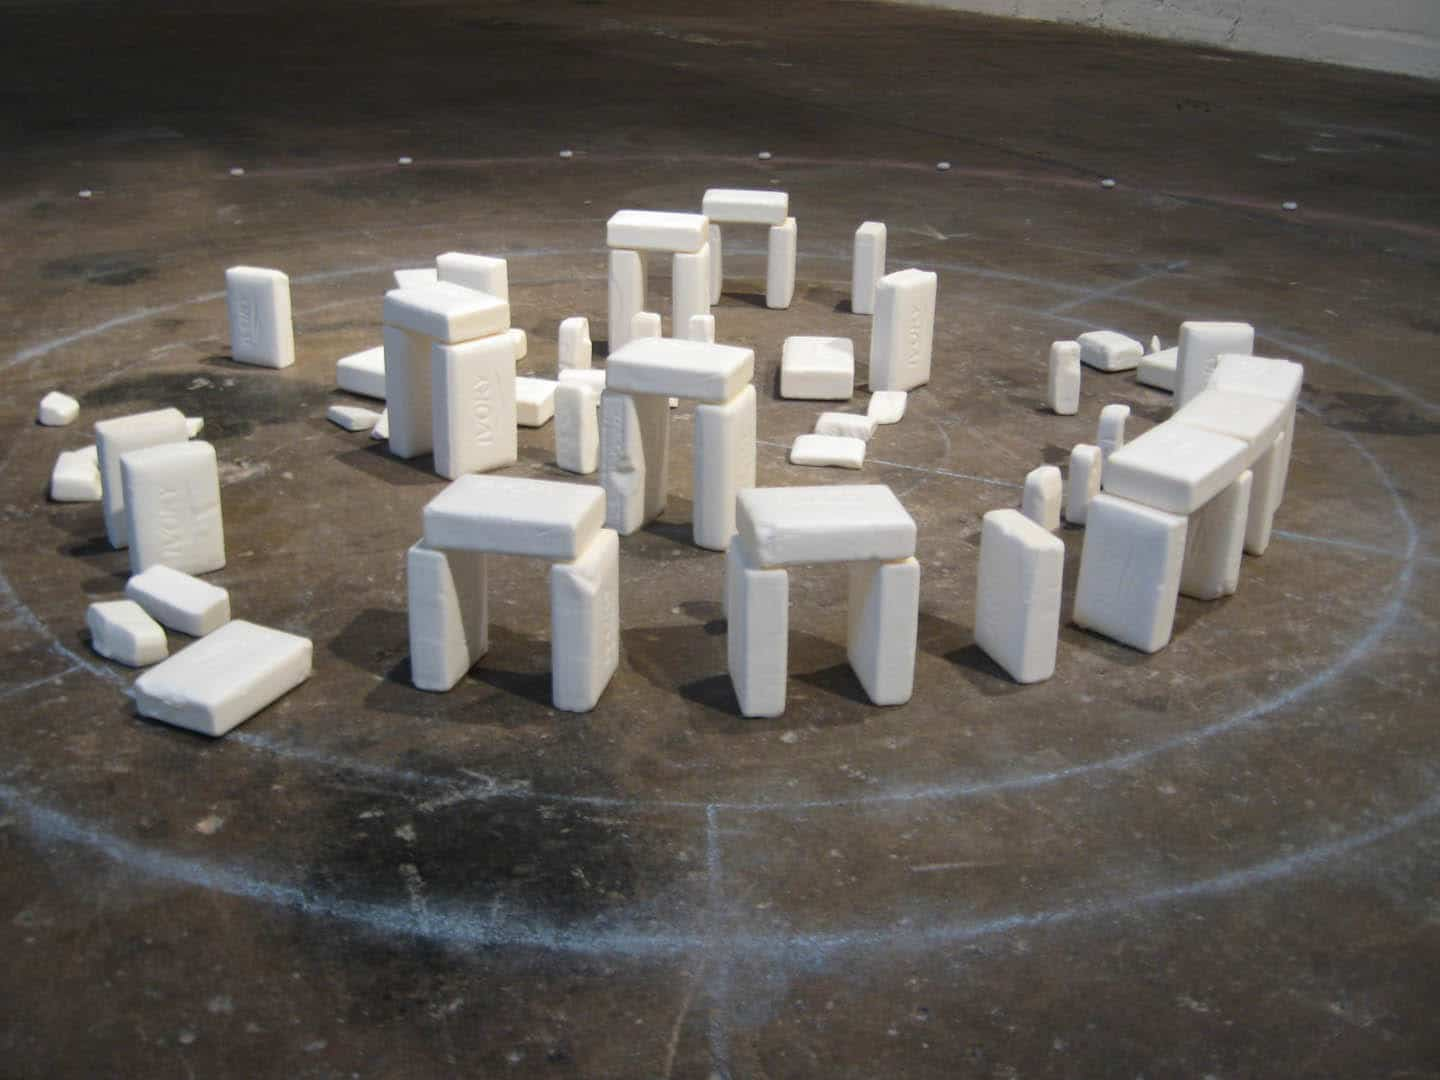 Soaphenge: The Cleaner Version Of Stonehenge